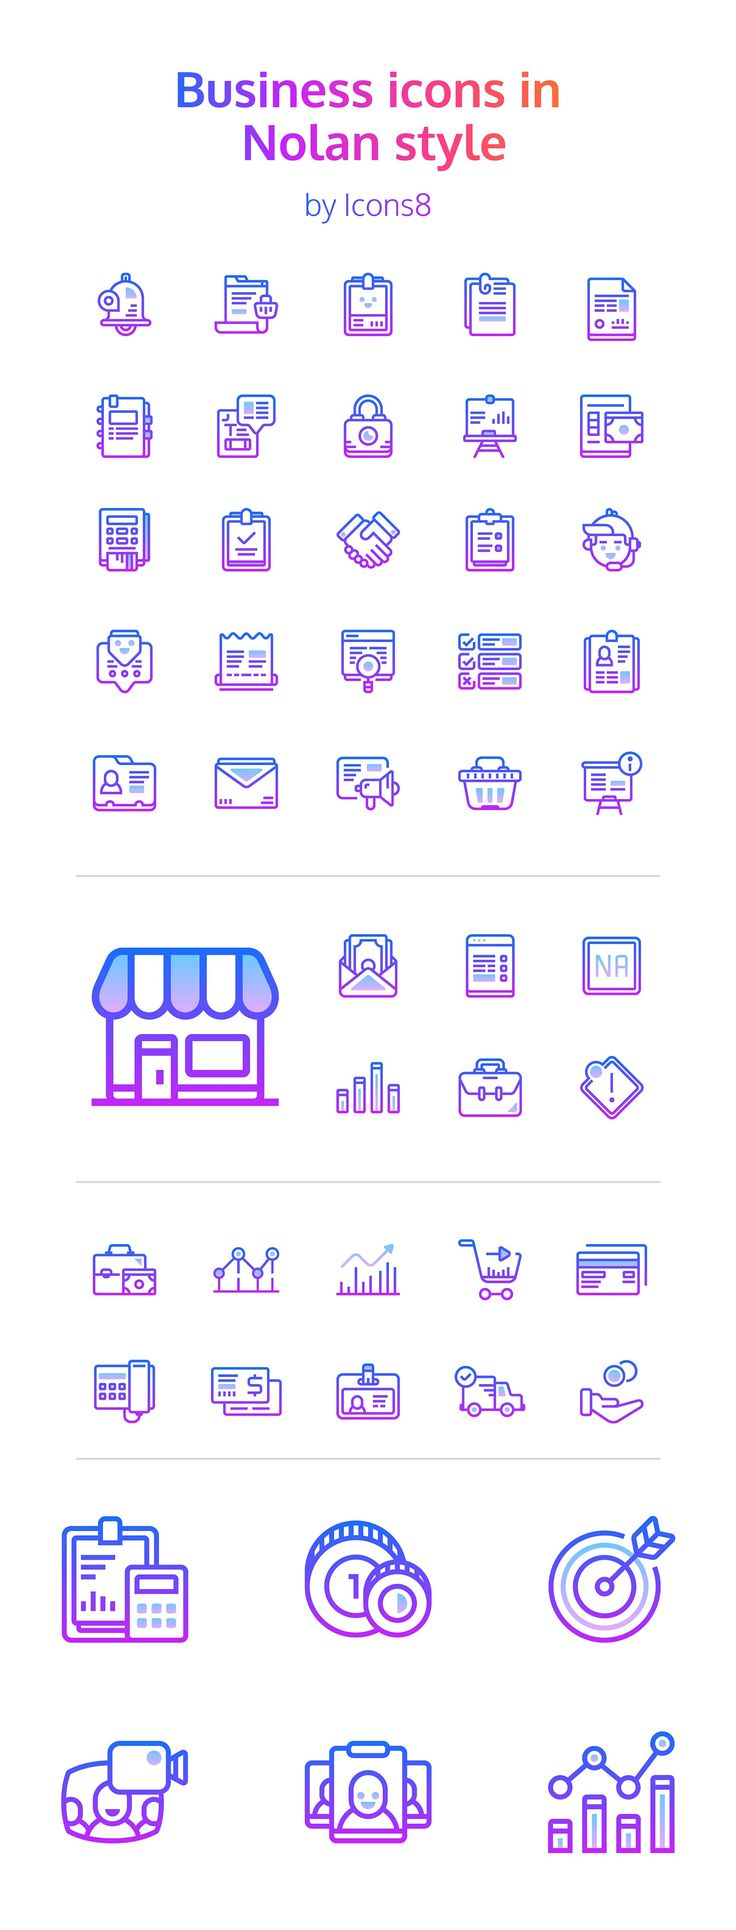 Kostenloser Download: 48 Nolan Business Icons by Icons8